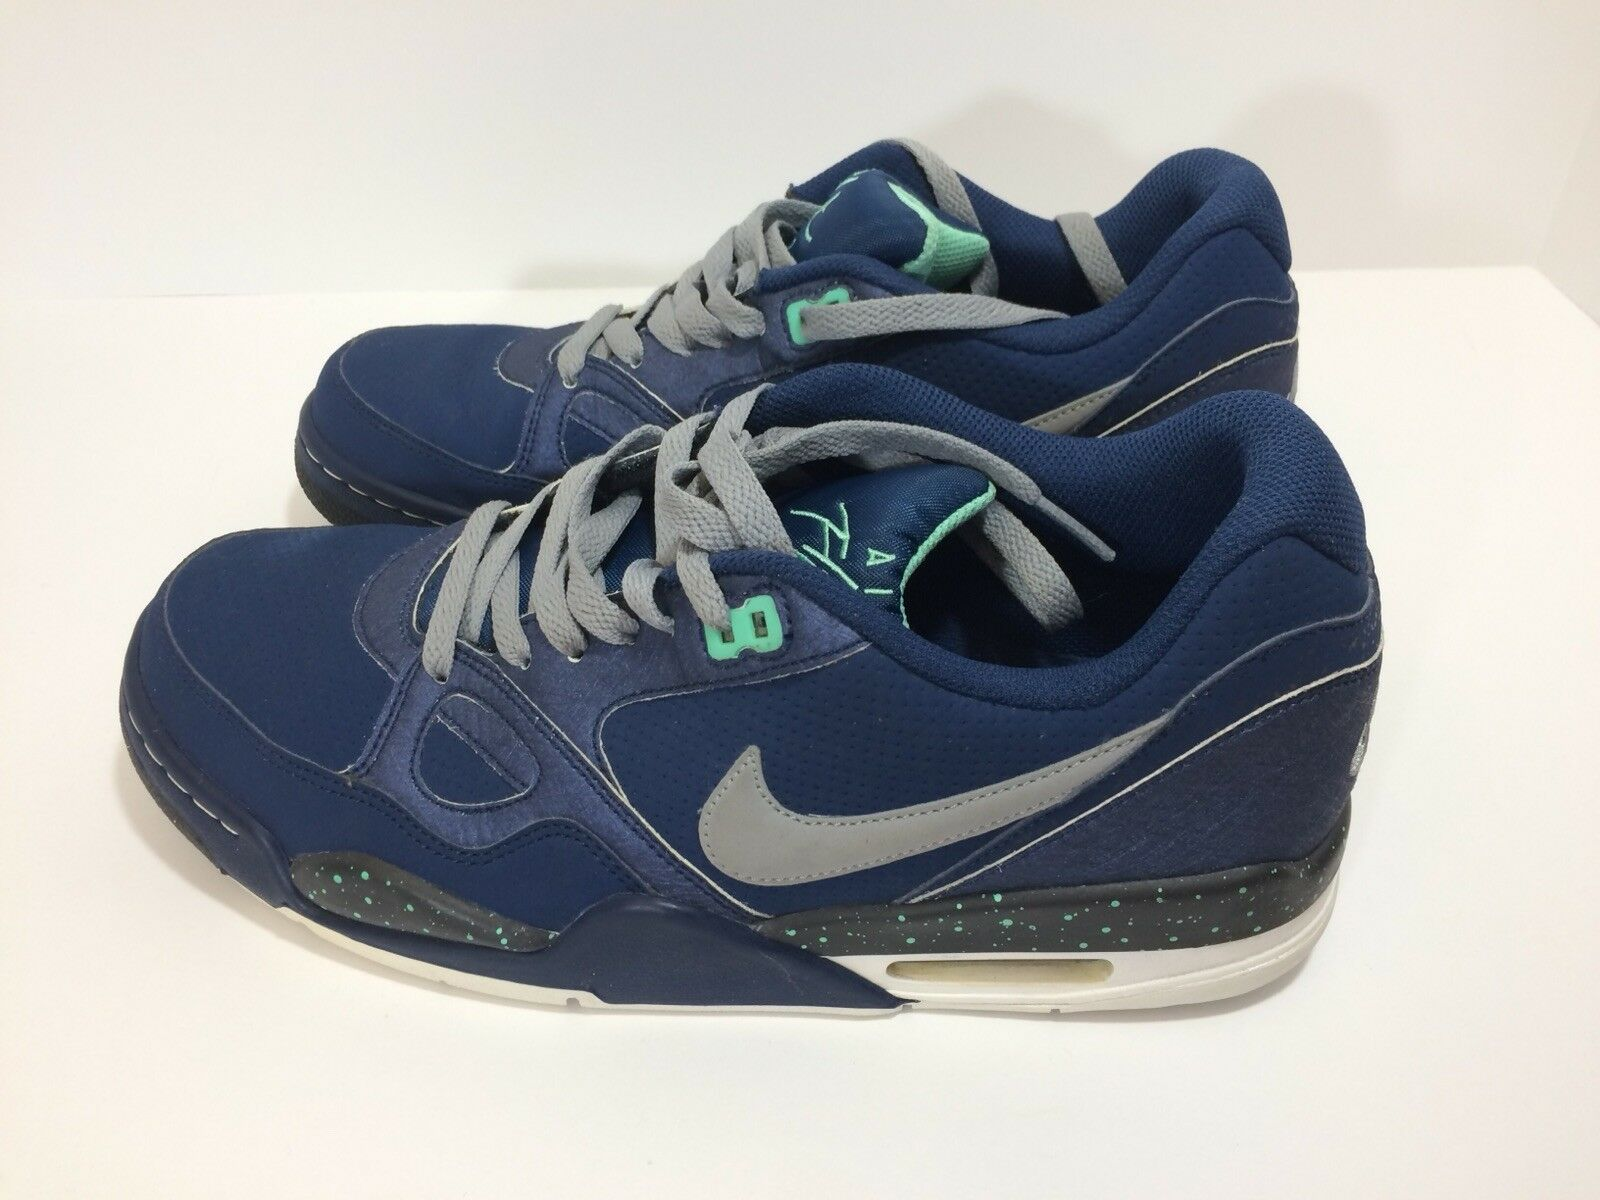 best-selling model of the brand Nike flight 13 trainers 599467 400 Men's Shoes US size 9